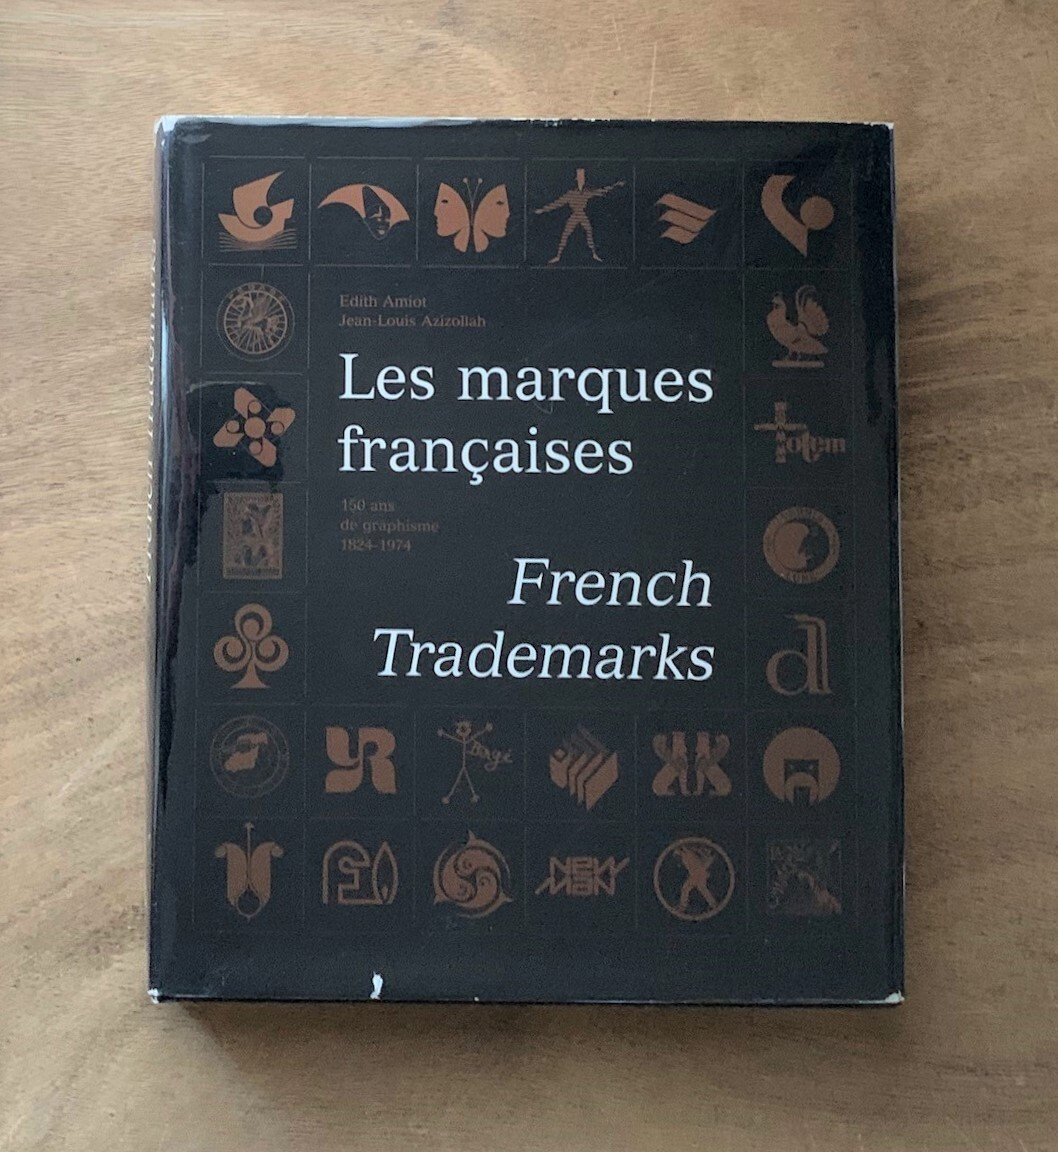 Les marques francaises French Trademarks / フランスの商業エンブレム